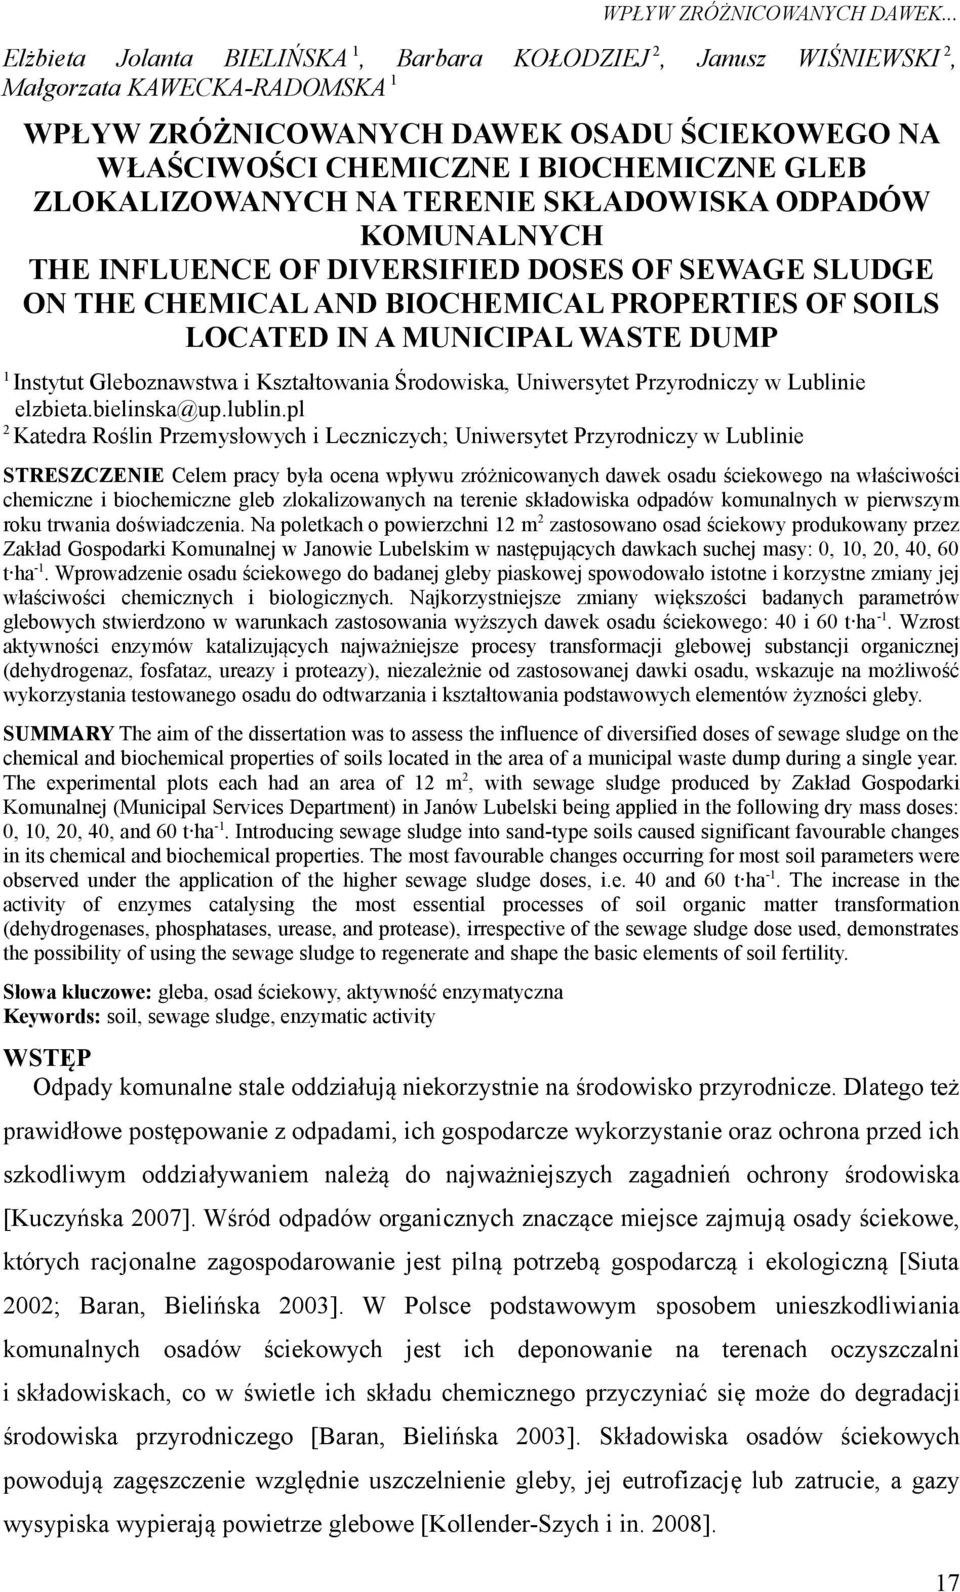 ZLOKALIZOWANYCH NA TERENIE SKŁADOWISKA ODPADÓW KOMUNALNYCH THE INFLUENCE OF DIVERSIFIED DOSES OF SEWAGE SLUDGE ON THE CHEMICAL AND BIOCHEMICAL PROPERTIES OF SOILS LOCATED IN A MUNICIPAL WASTE DUMP 1